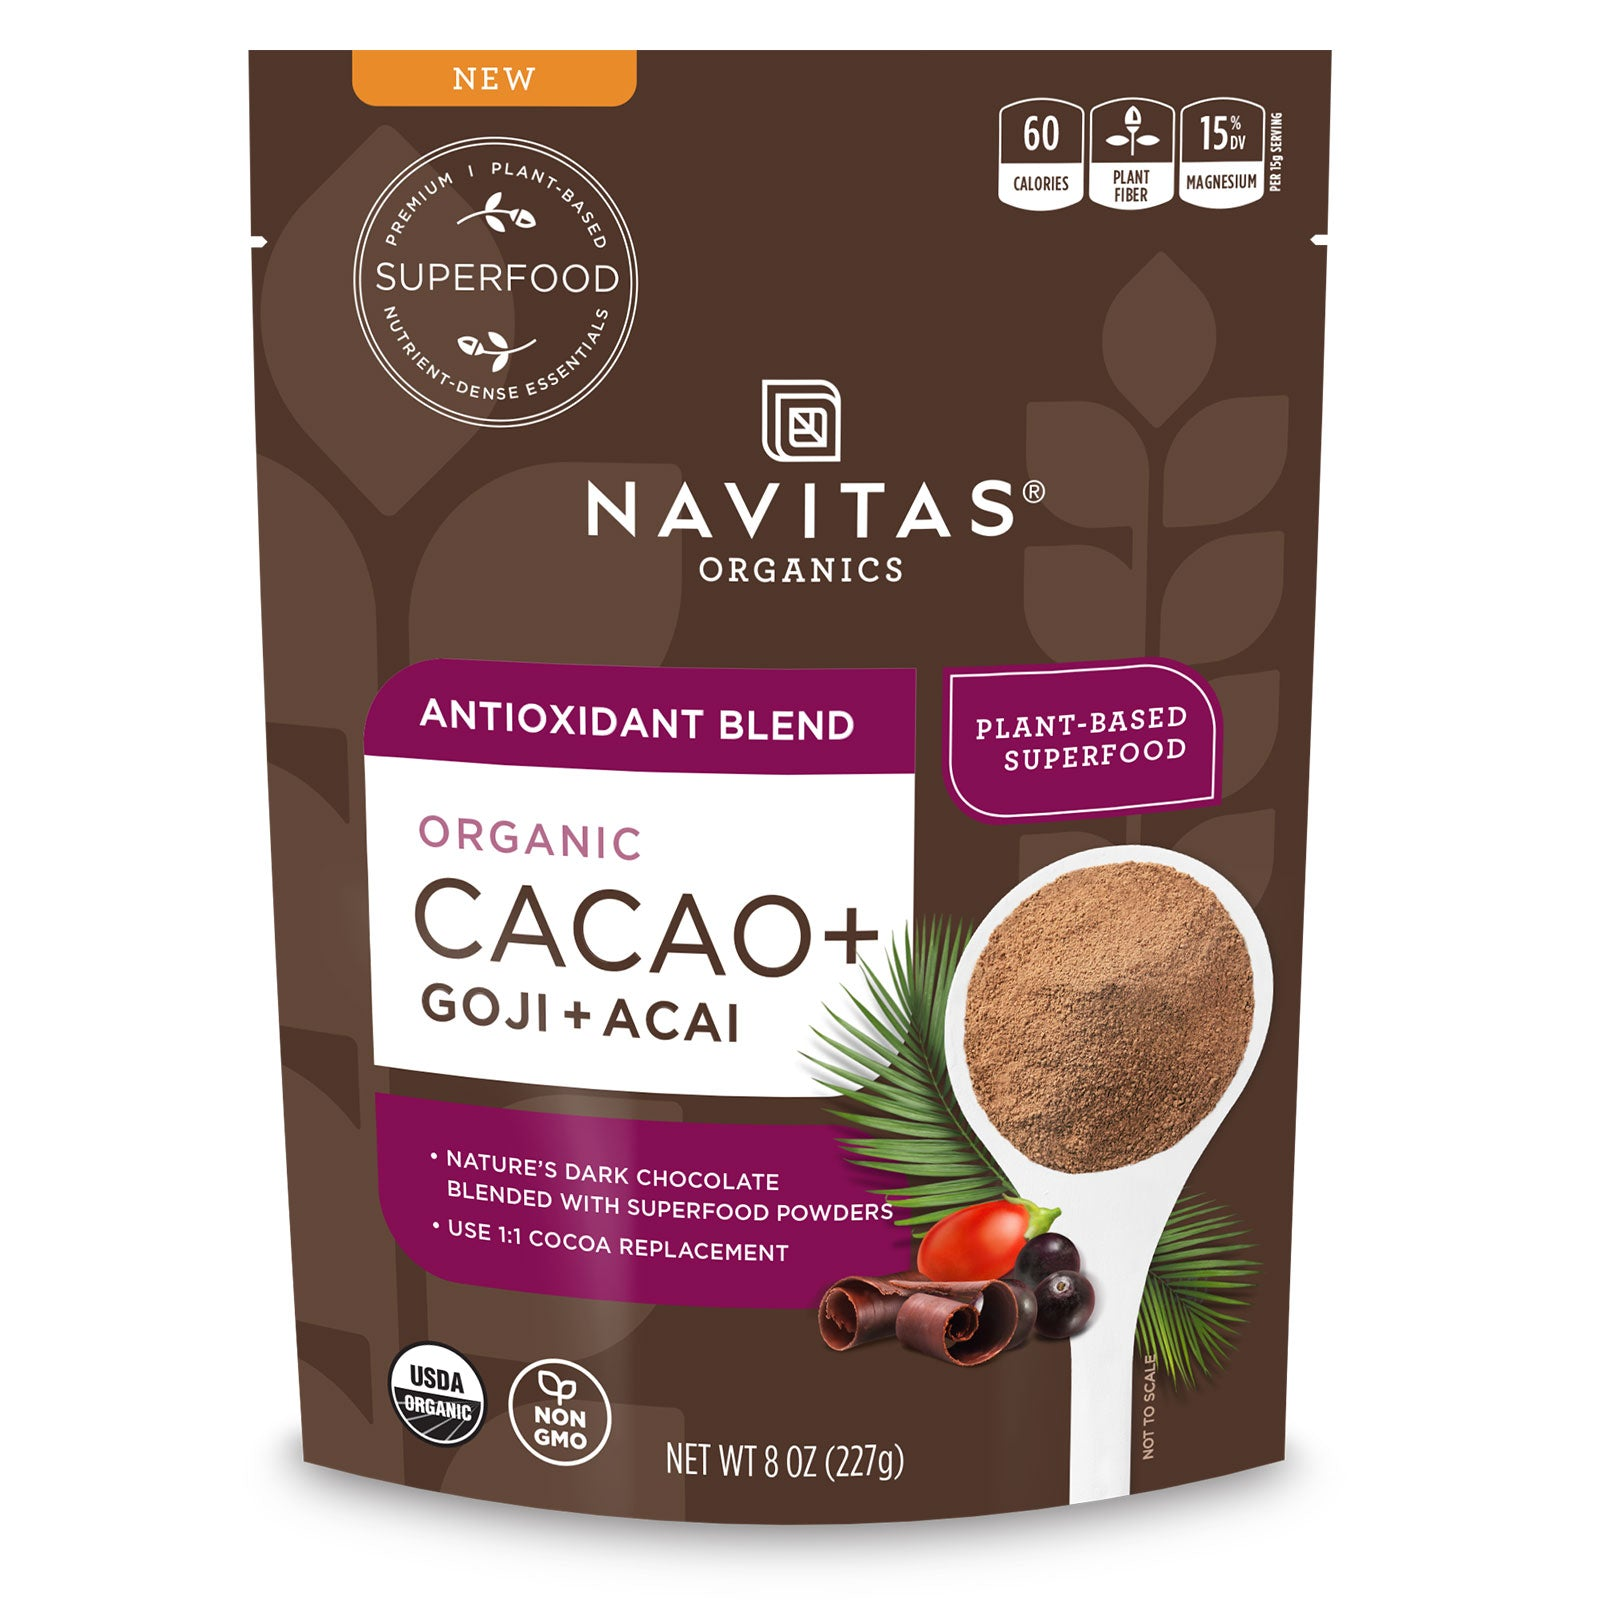 Navitas Organics Cacao Antioxidant Blend package front